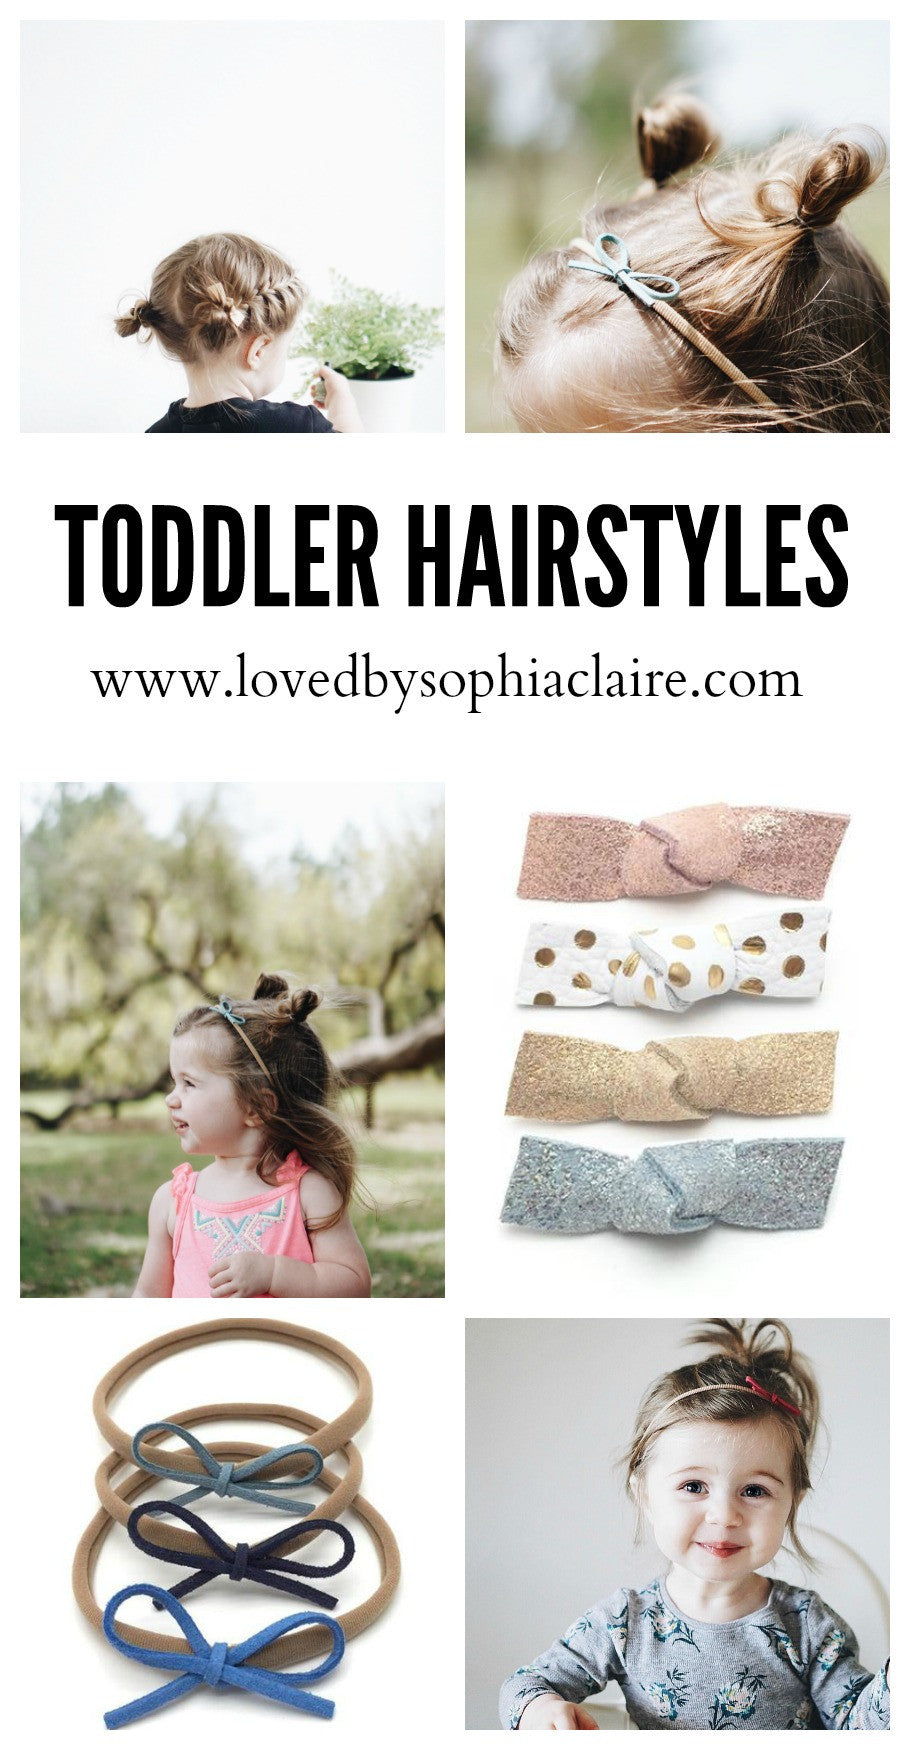 5 Toddler Hairstyles Loved By Sophia Claire